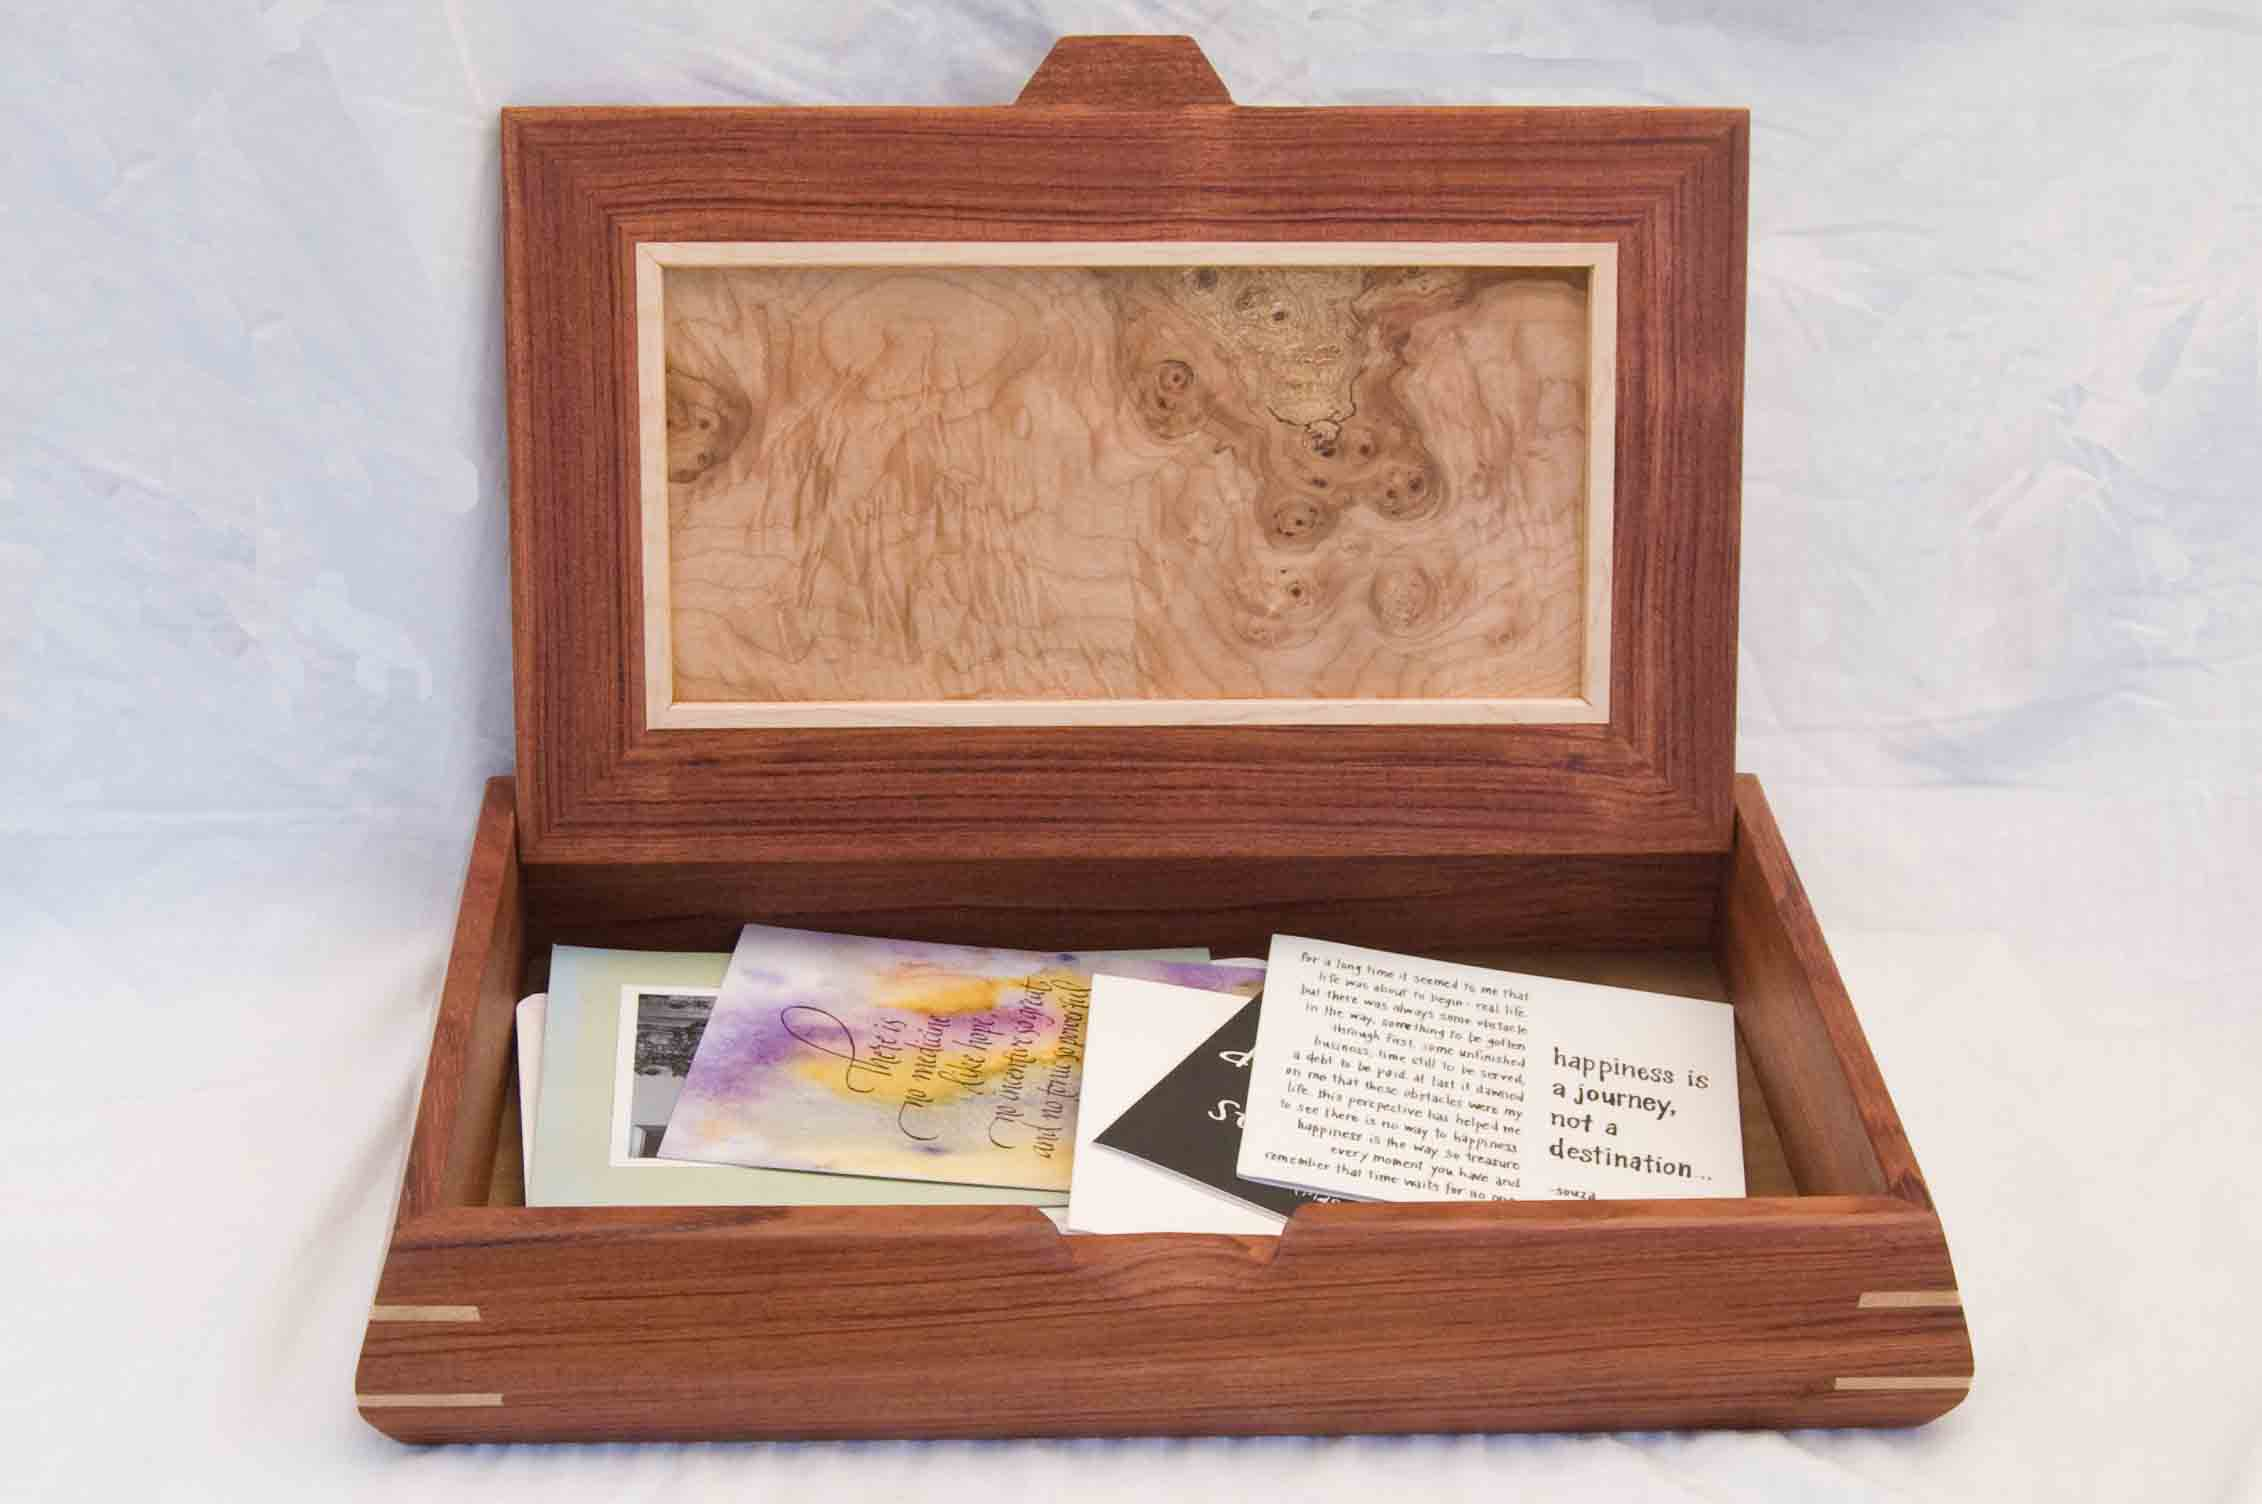 One of my handcrafted wooden boxes made of beautiful woods shown with its lid open and holding birthday cards